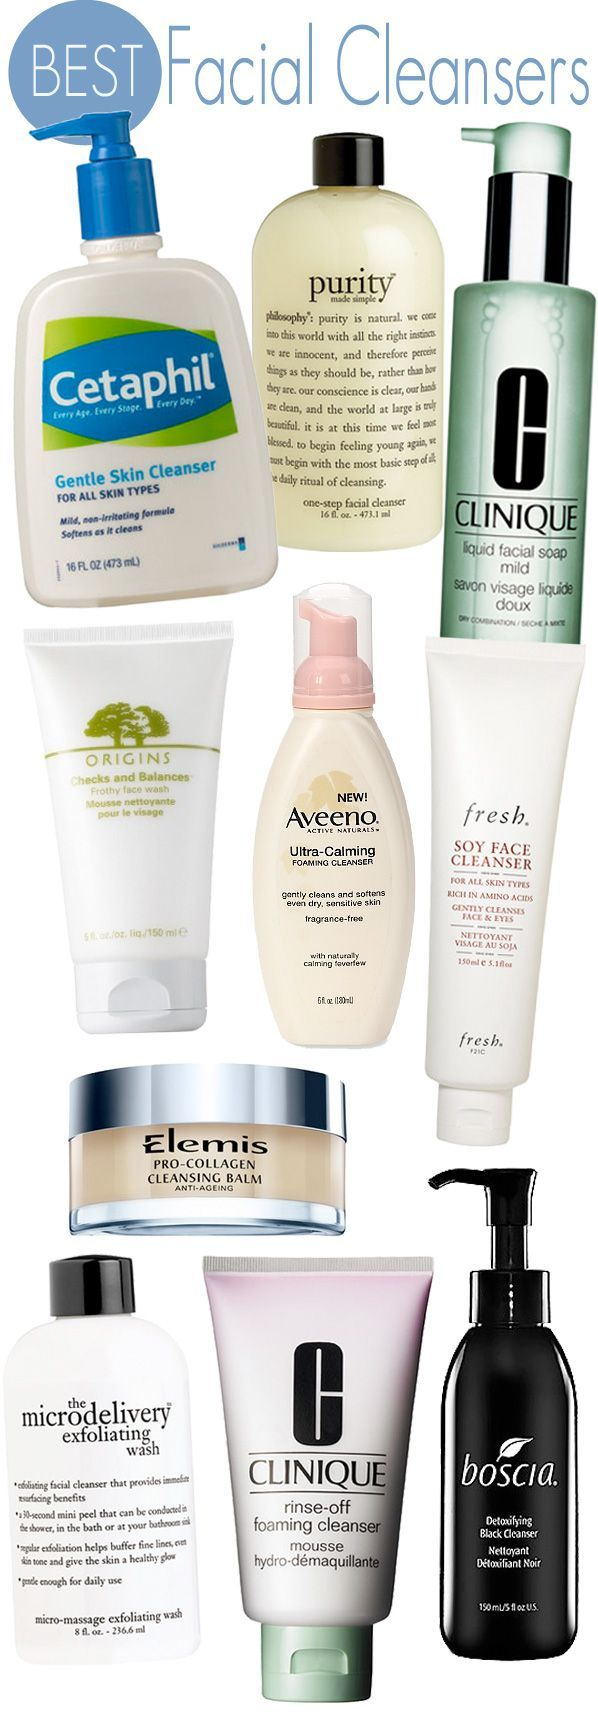 Bird reccomend Best facial cleanser products